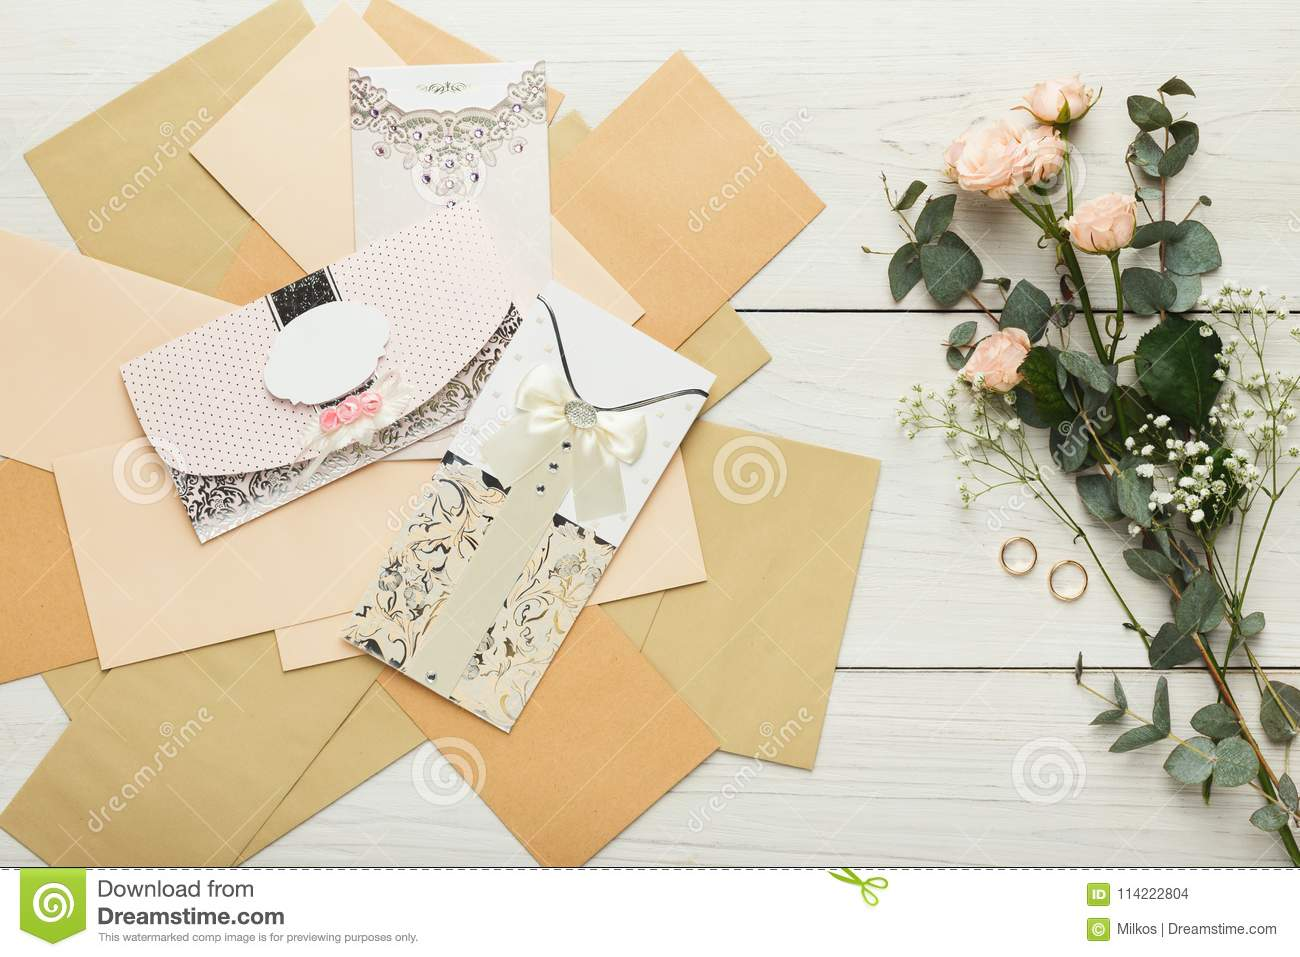 Wedding Invitation Cards And Envelopes On White Wooden Table, To ...